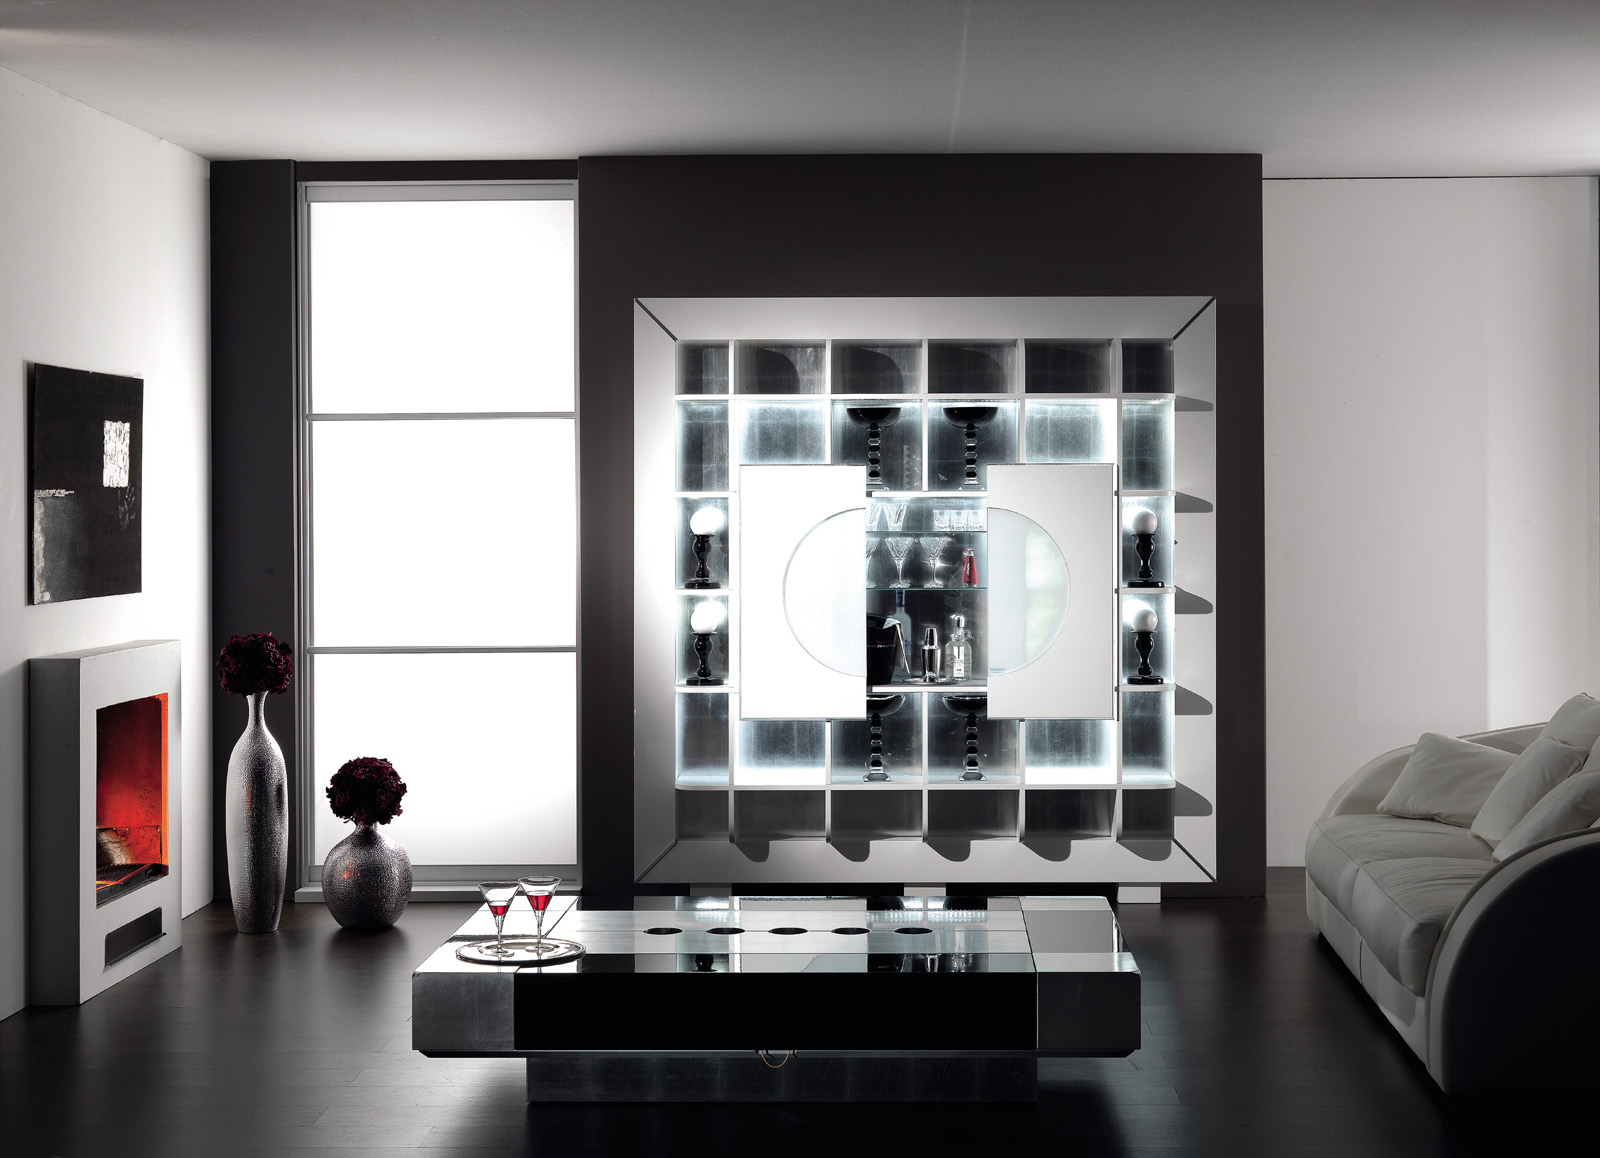 Barschrank Design Luxury Wall Bar Cabinet Produced In Italy By Vismara Design